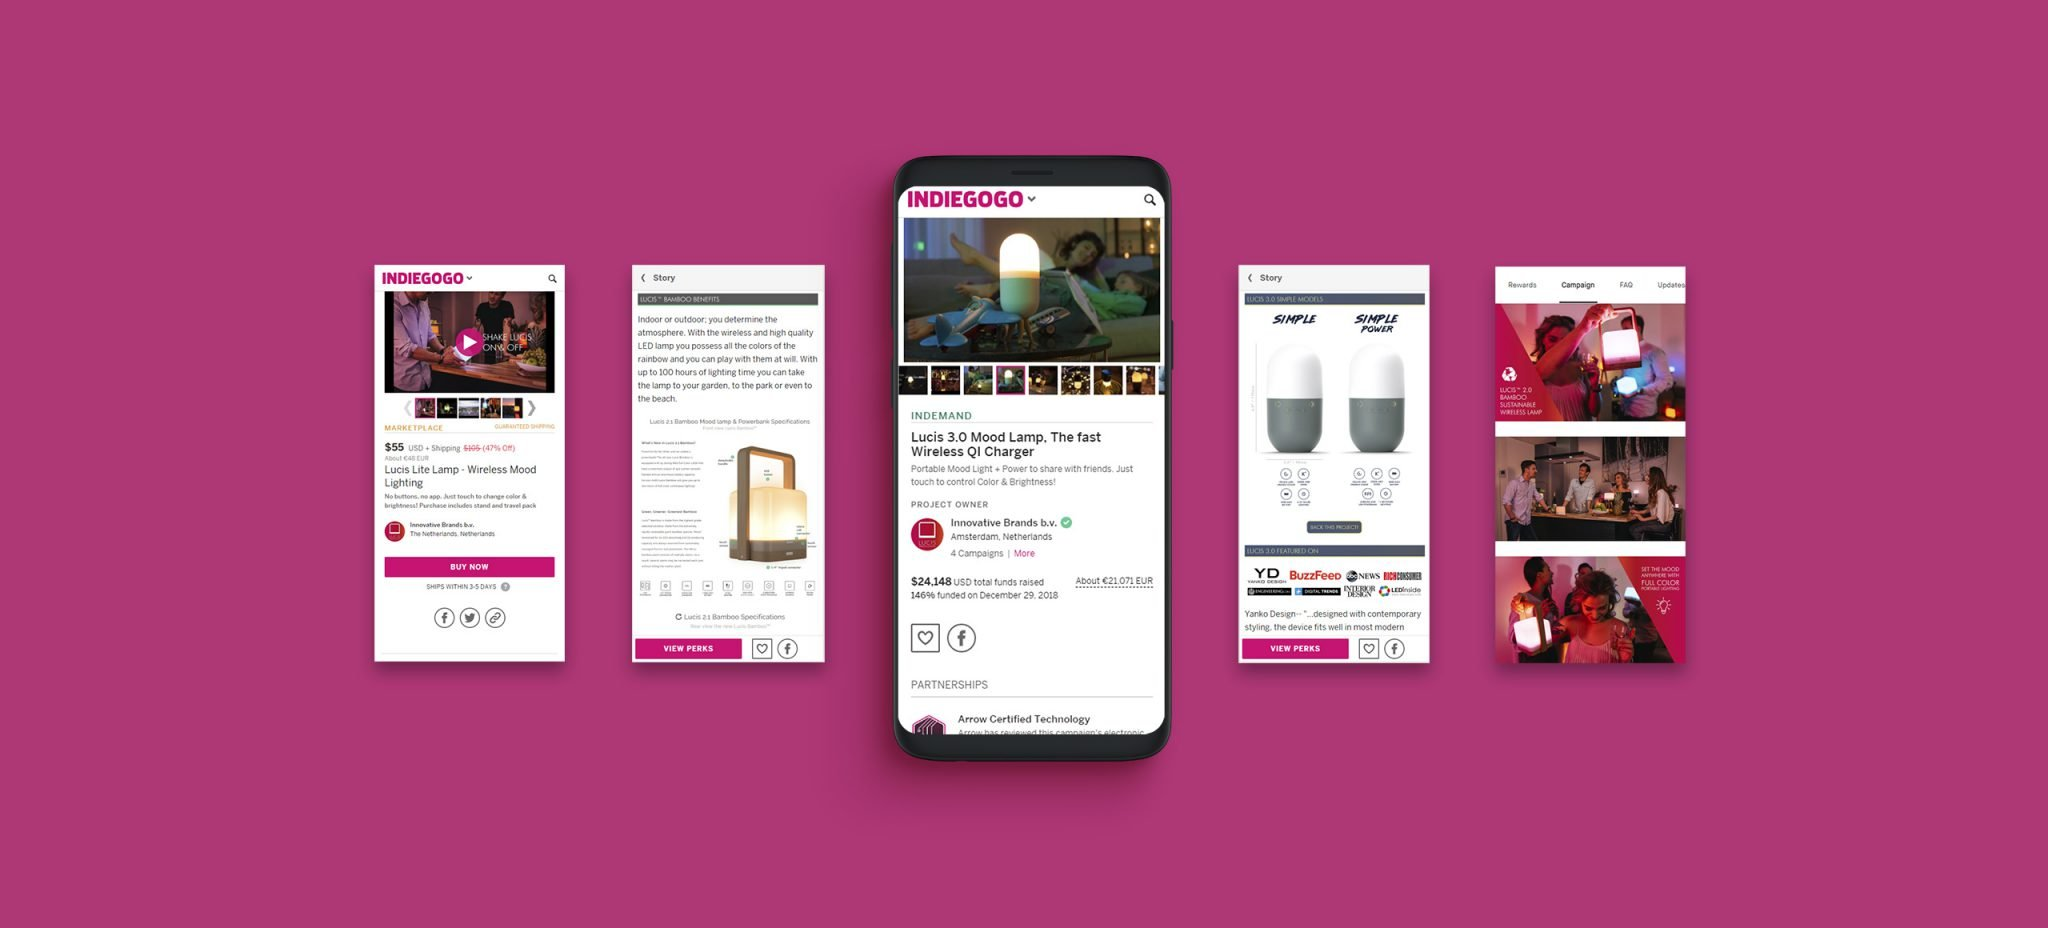 innovative-digital-amsterdam-webdesign-lucis-wireless-lighting-campaigns-01